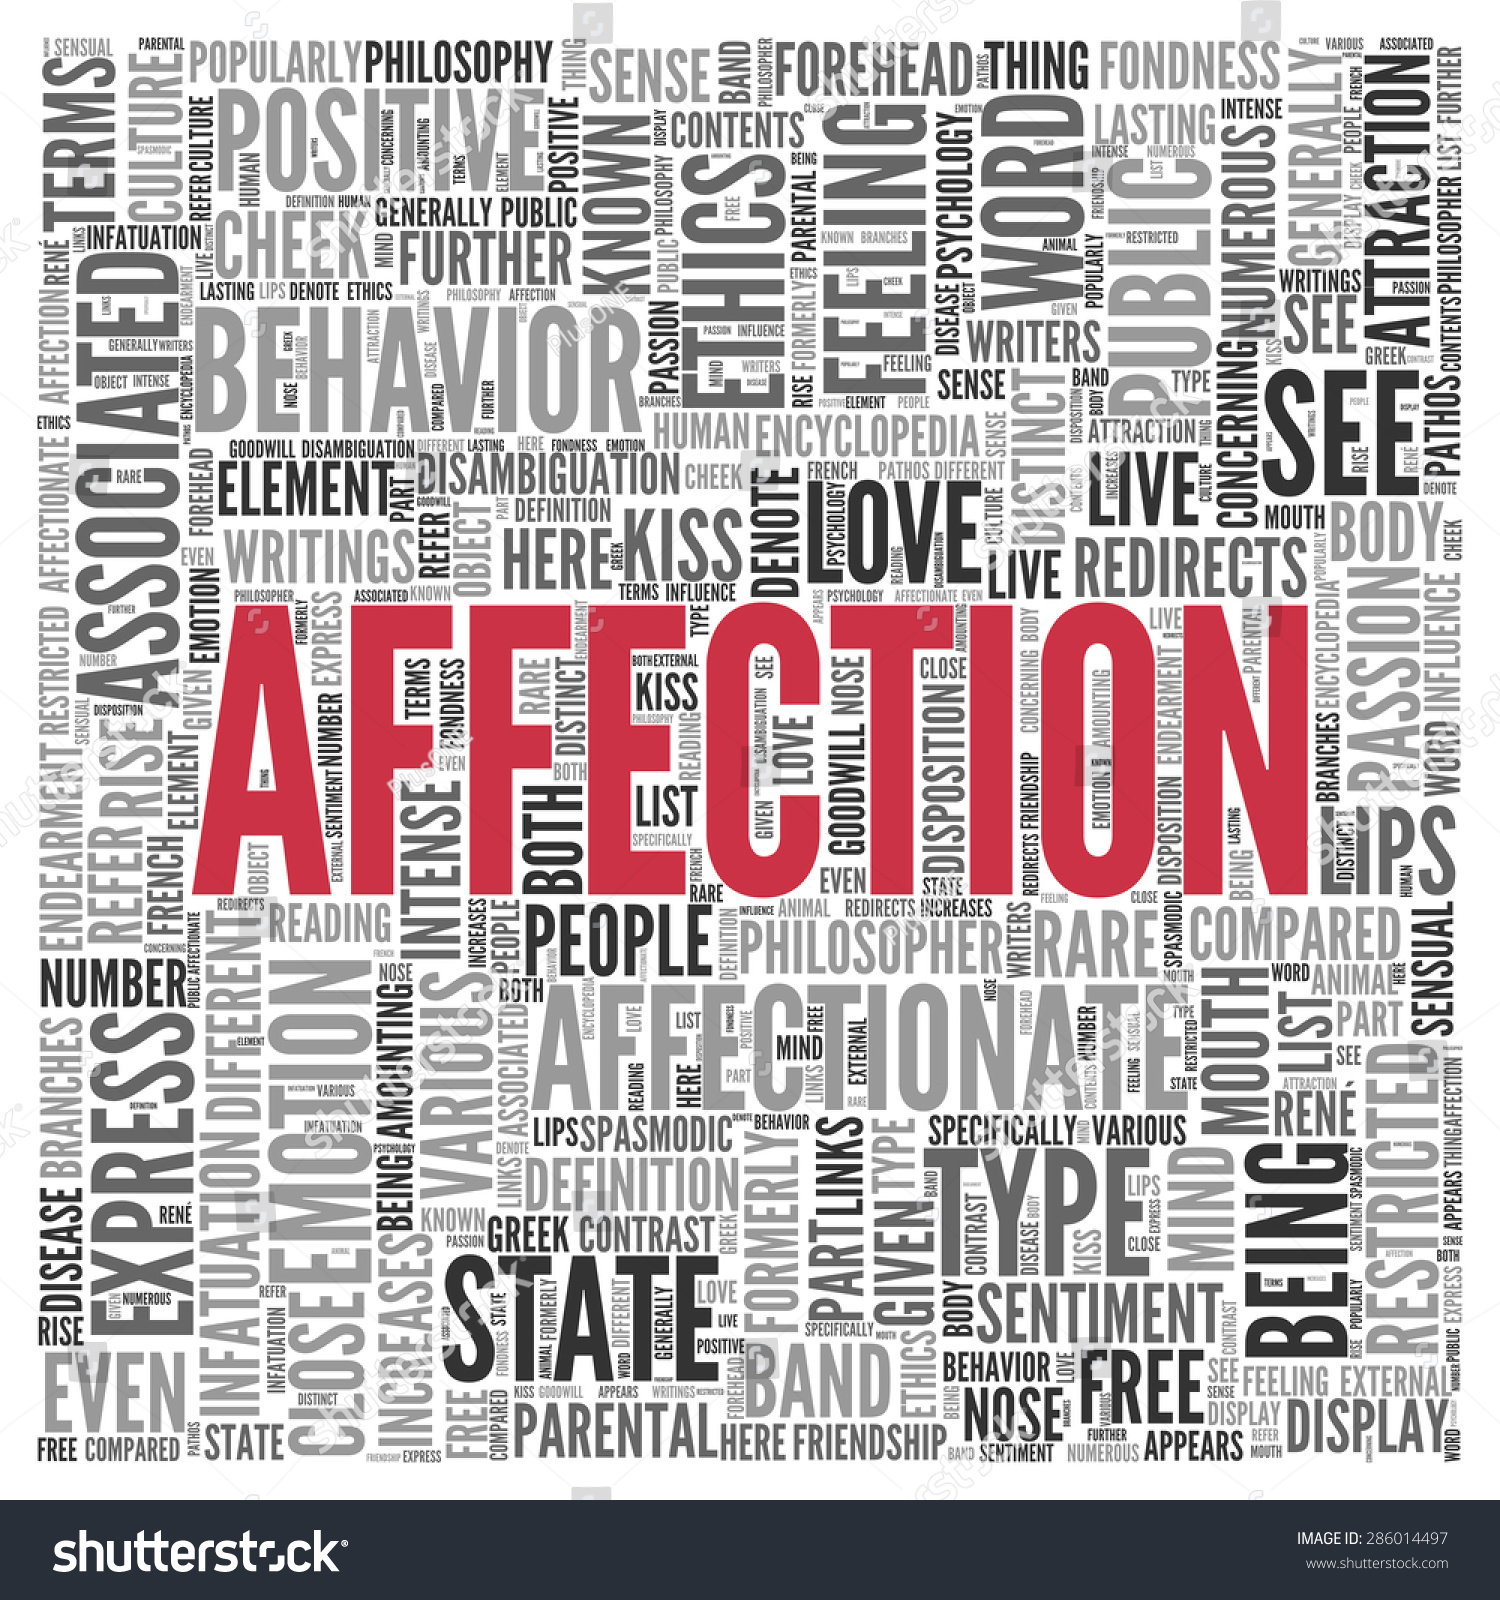 H tag background image - Close Up Affection Text At The Center Of Word Tag Cloud On White Background